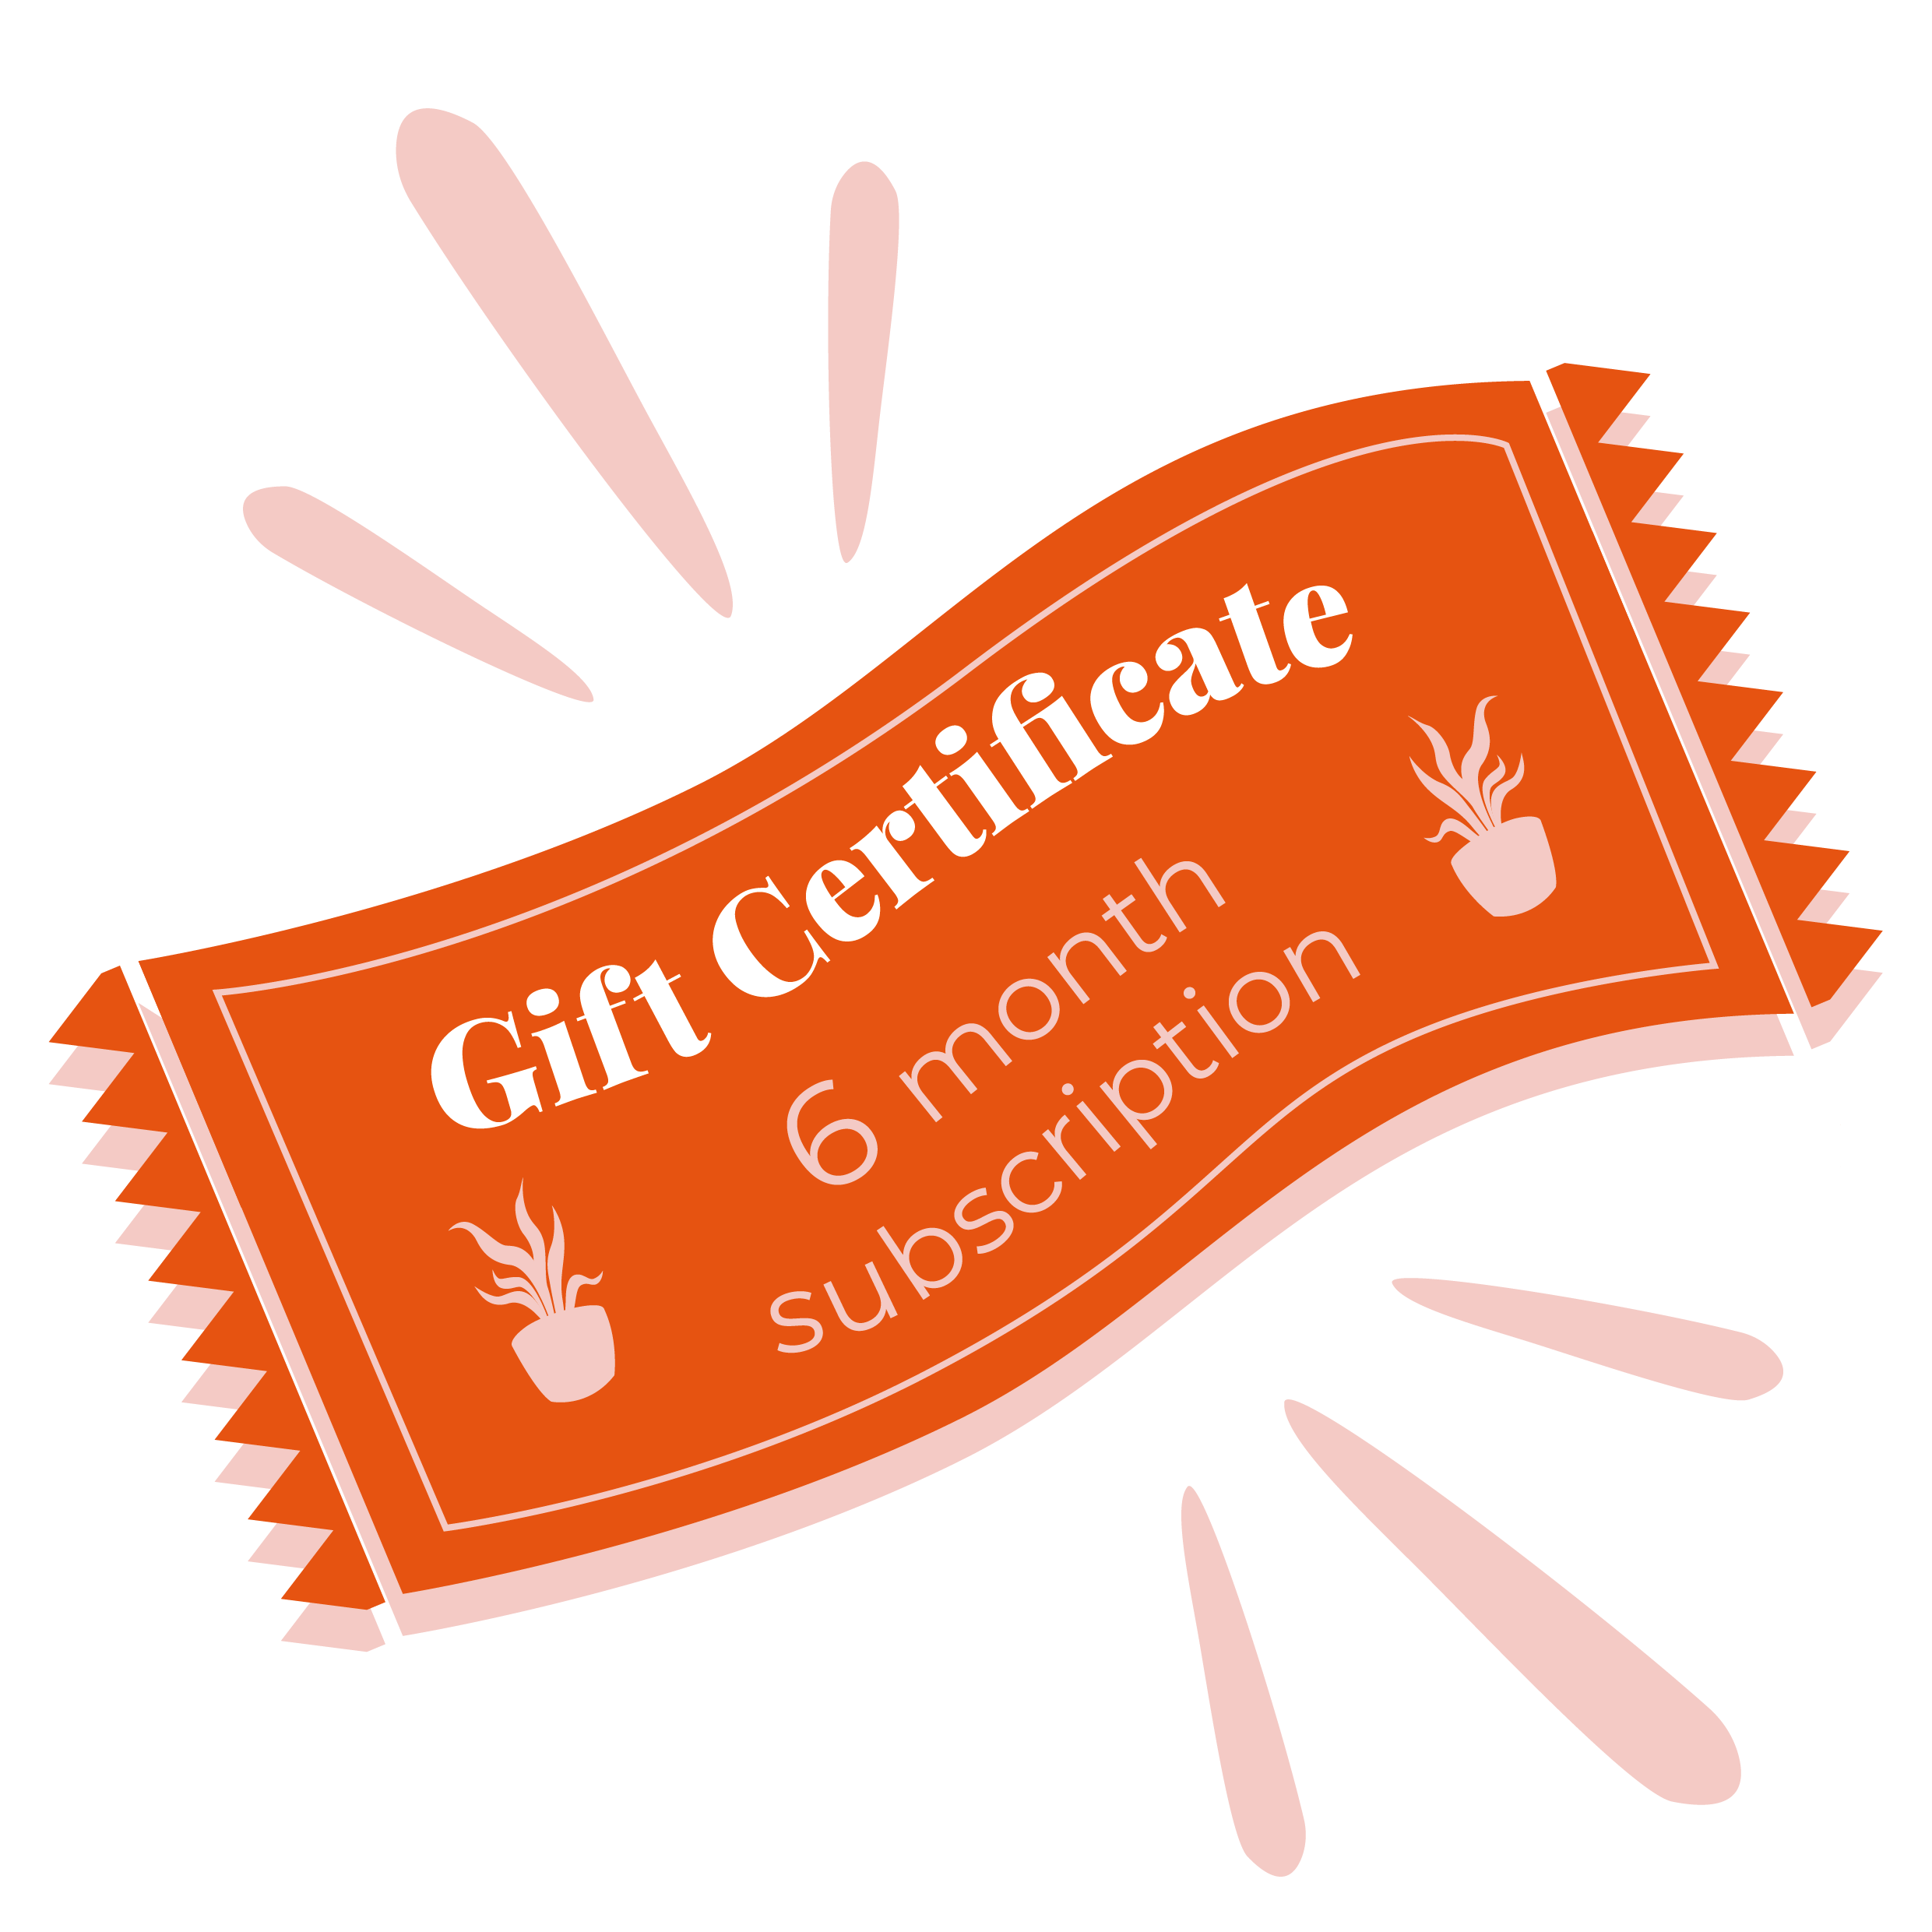 Gift Certificate - Six Month Botanic Box Subscription